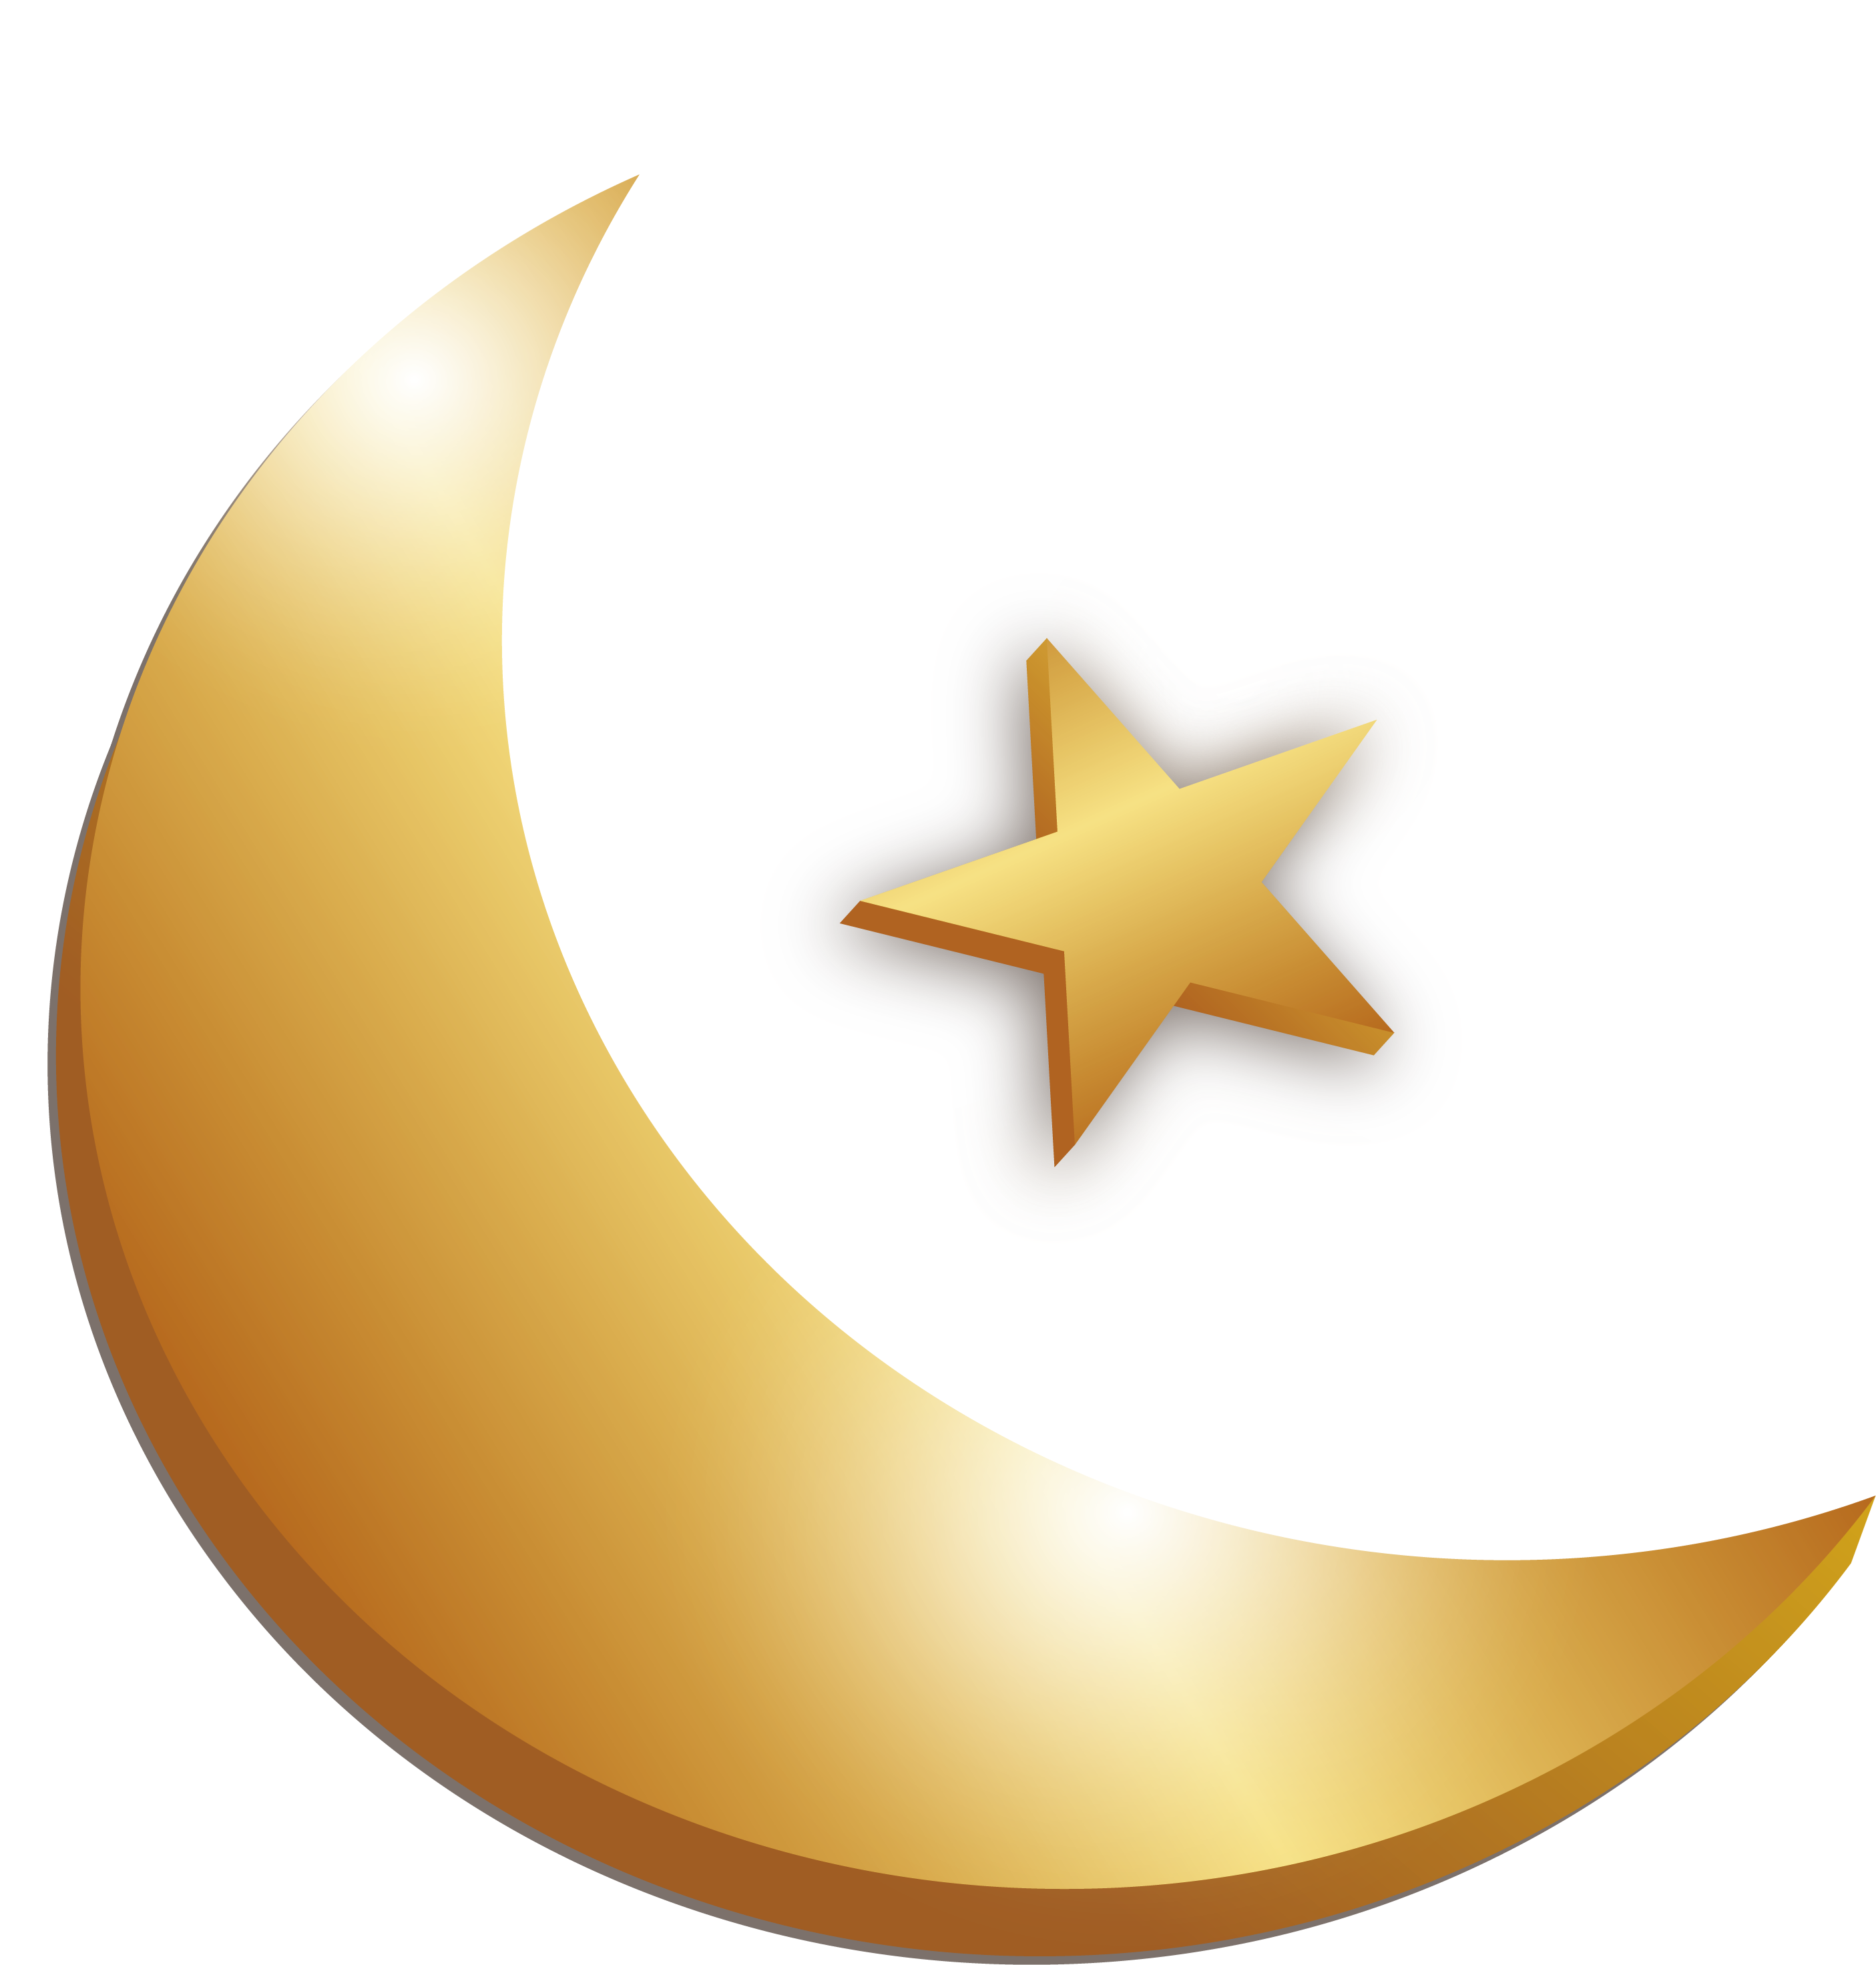 Crescent vector gold. Clipart moon cute borders